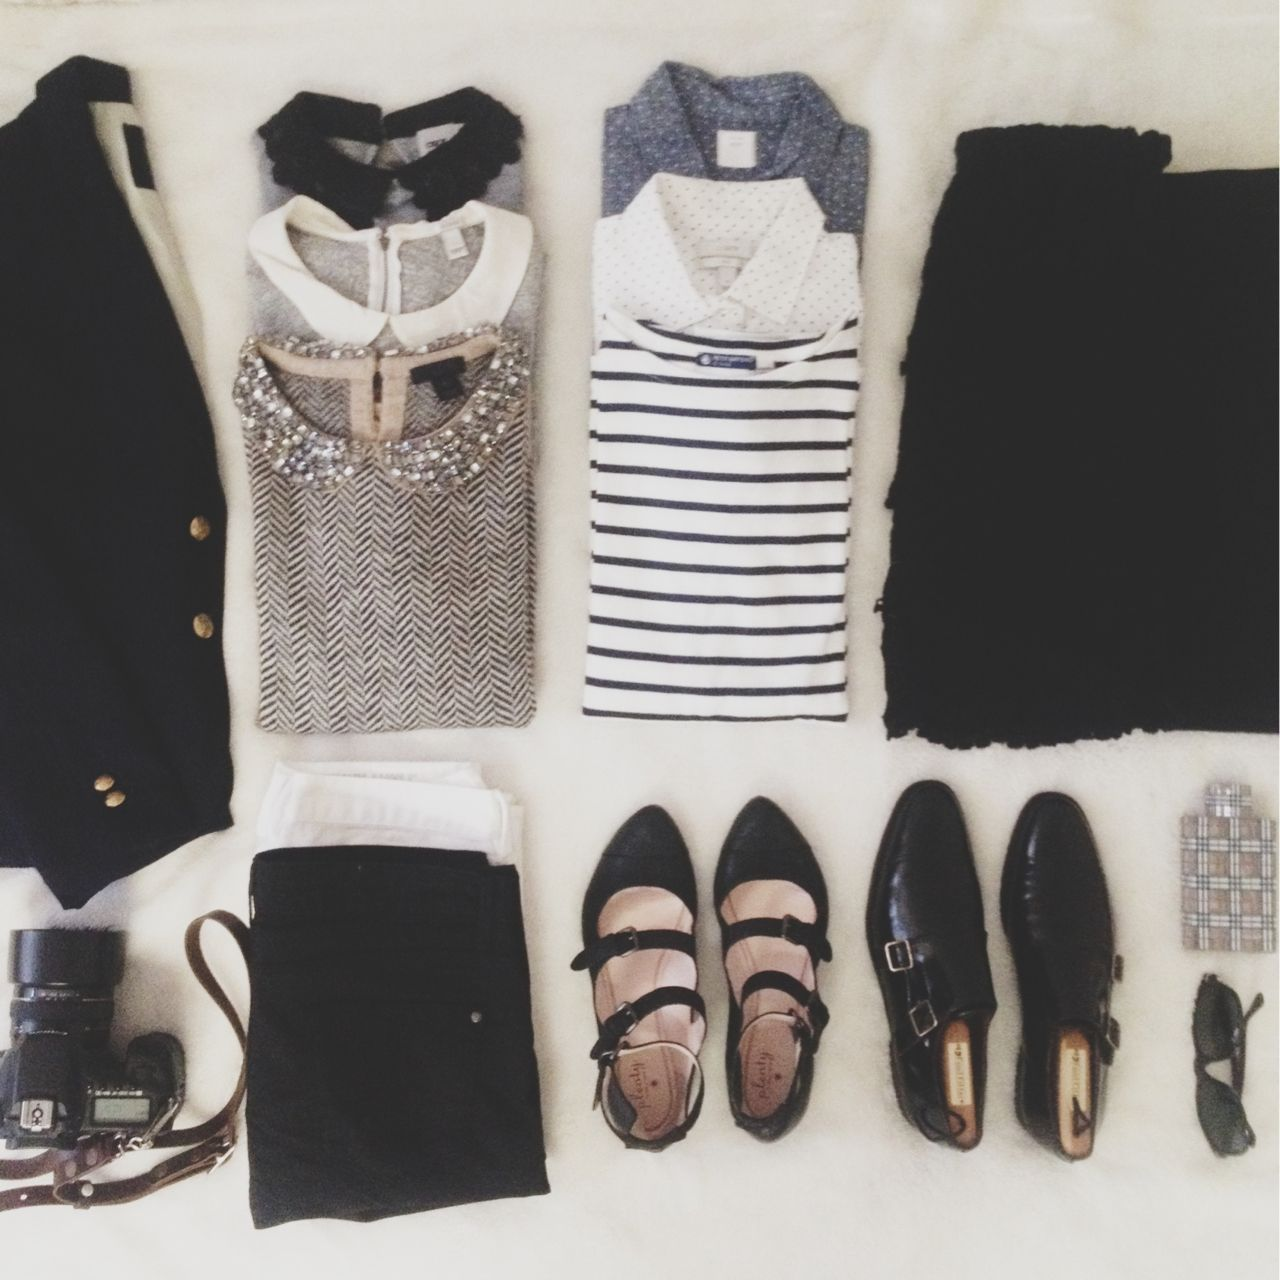 Wish these were the contents of my closet